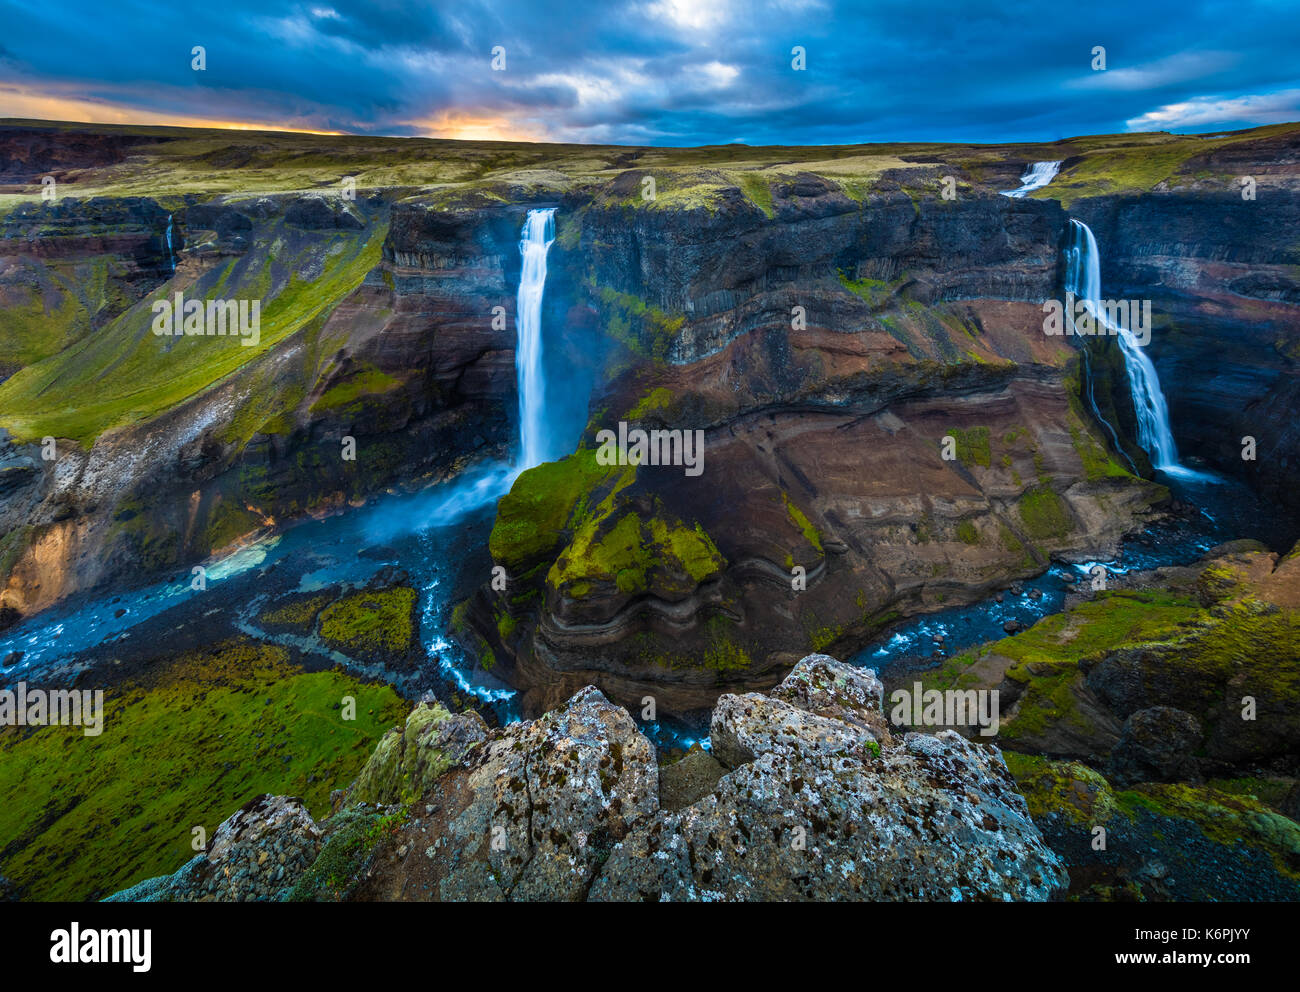 The waterfall Háifoss is situated near the volcano Hekla in the south of Iceland. The river Fossá, a tributary of Þjórsá, drops here from a height of  - Stock Image